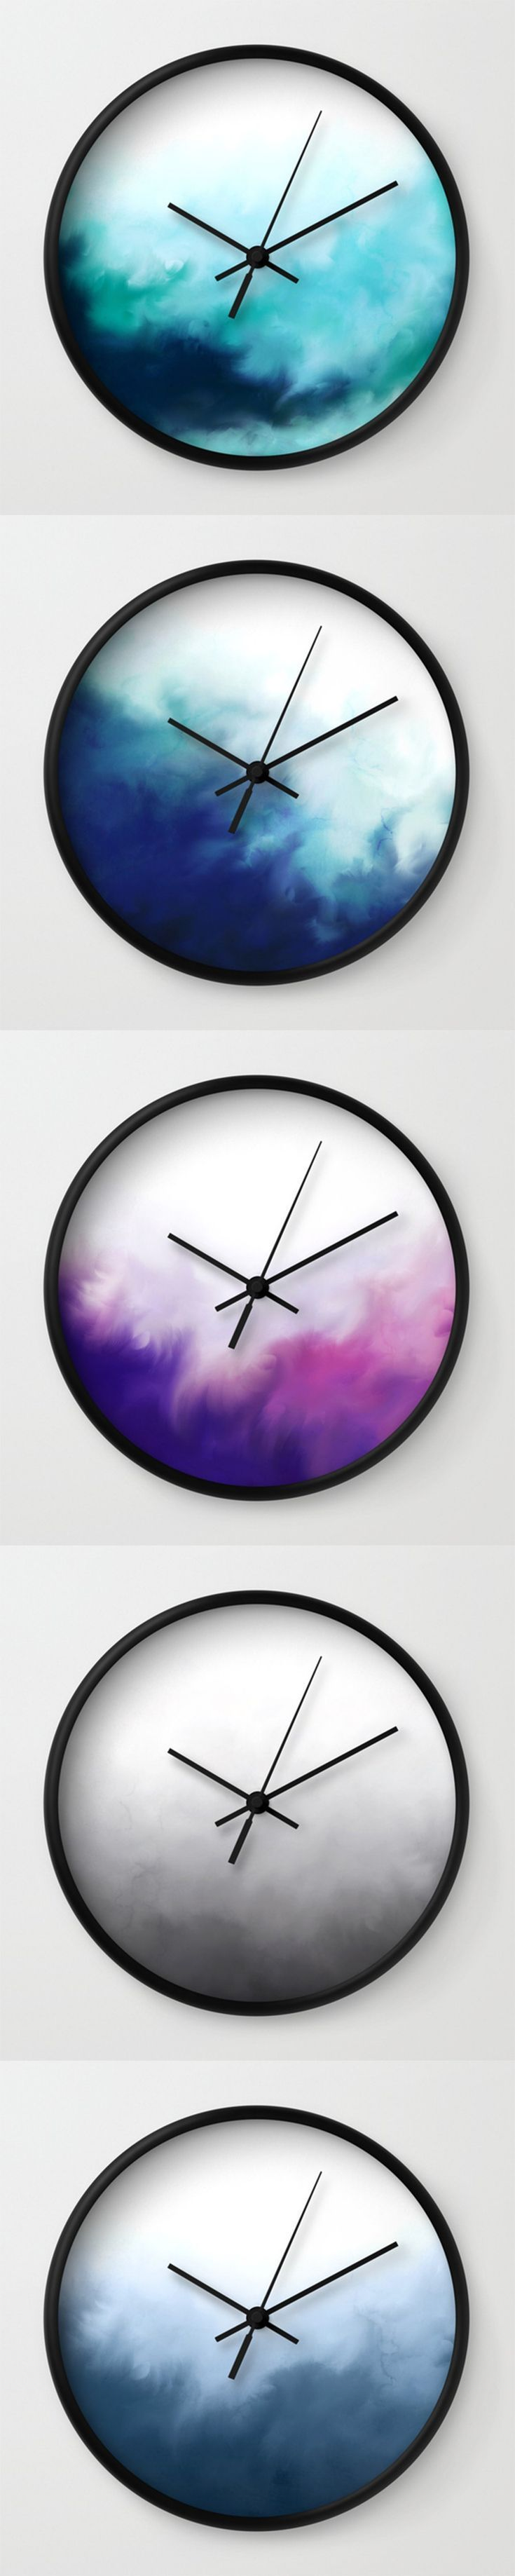 Minimalist Watercolour Wall Clocks   Home Decor, Hanging Clocks, Modern  Designs, Abstract Wall